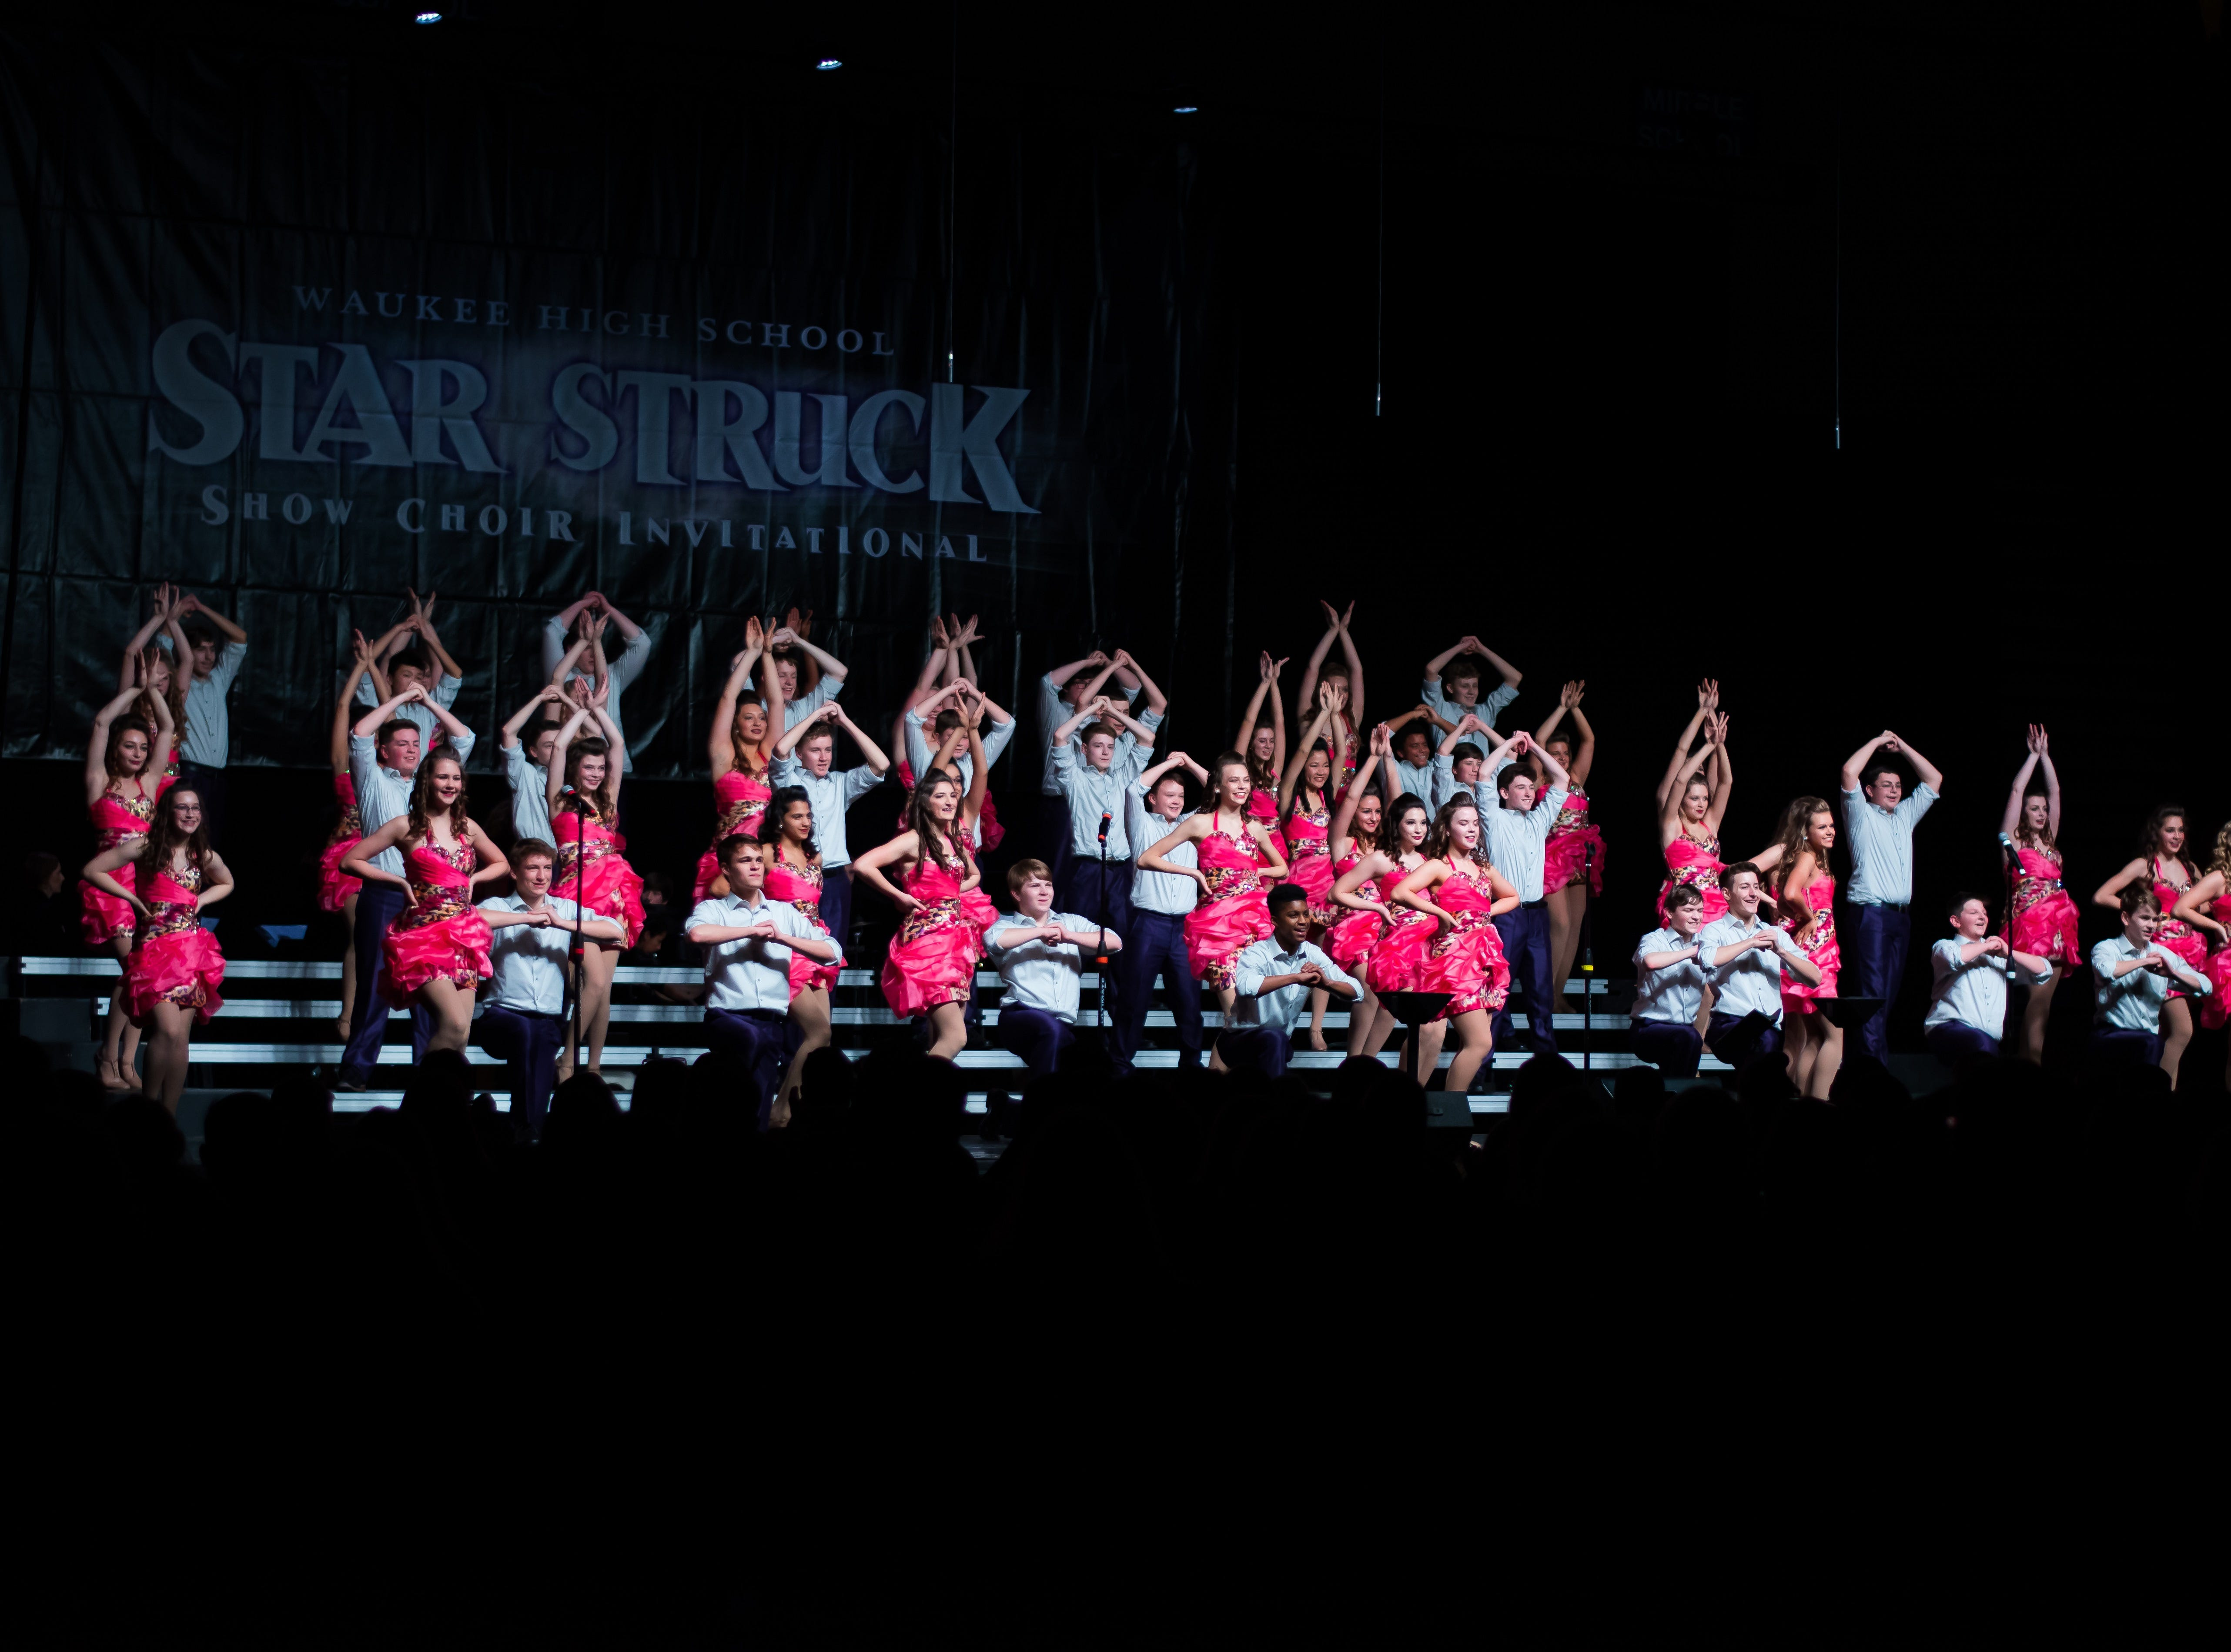 Johnston High show choir group Sound Advice performs on Saturday, Jan. 12, 2019 at the Waukee Star Struck Show Choir Invitational in the Waukee High School Field House.